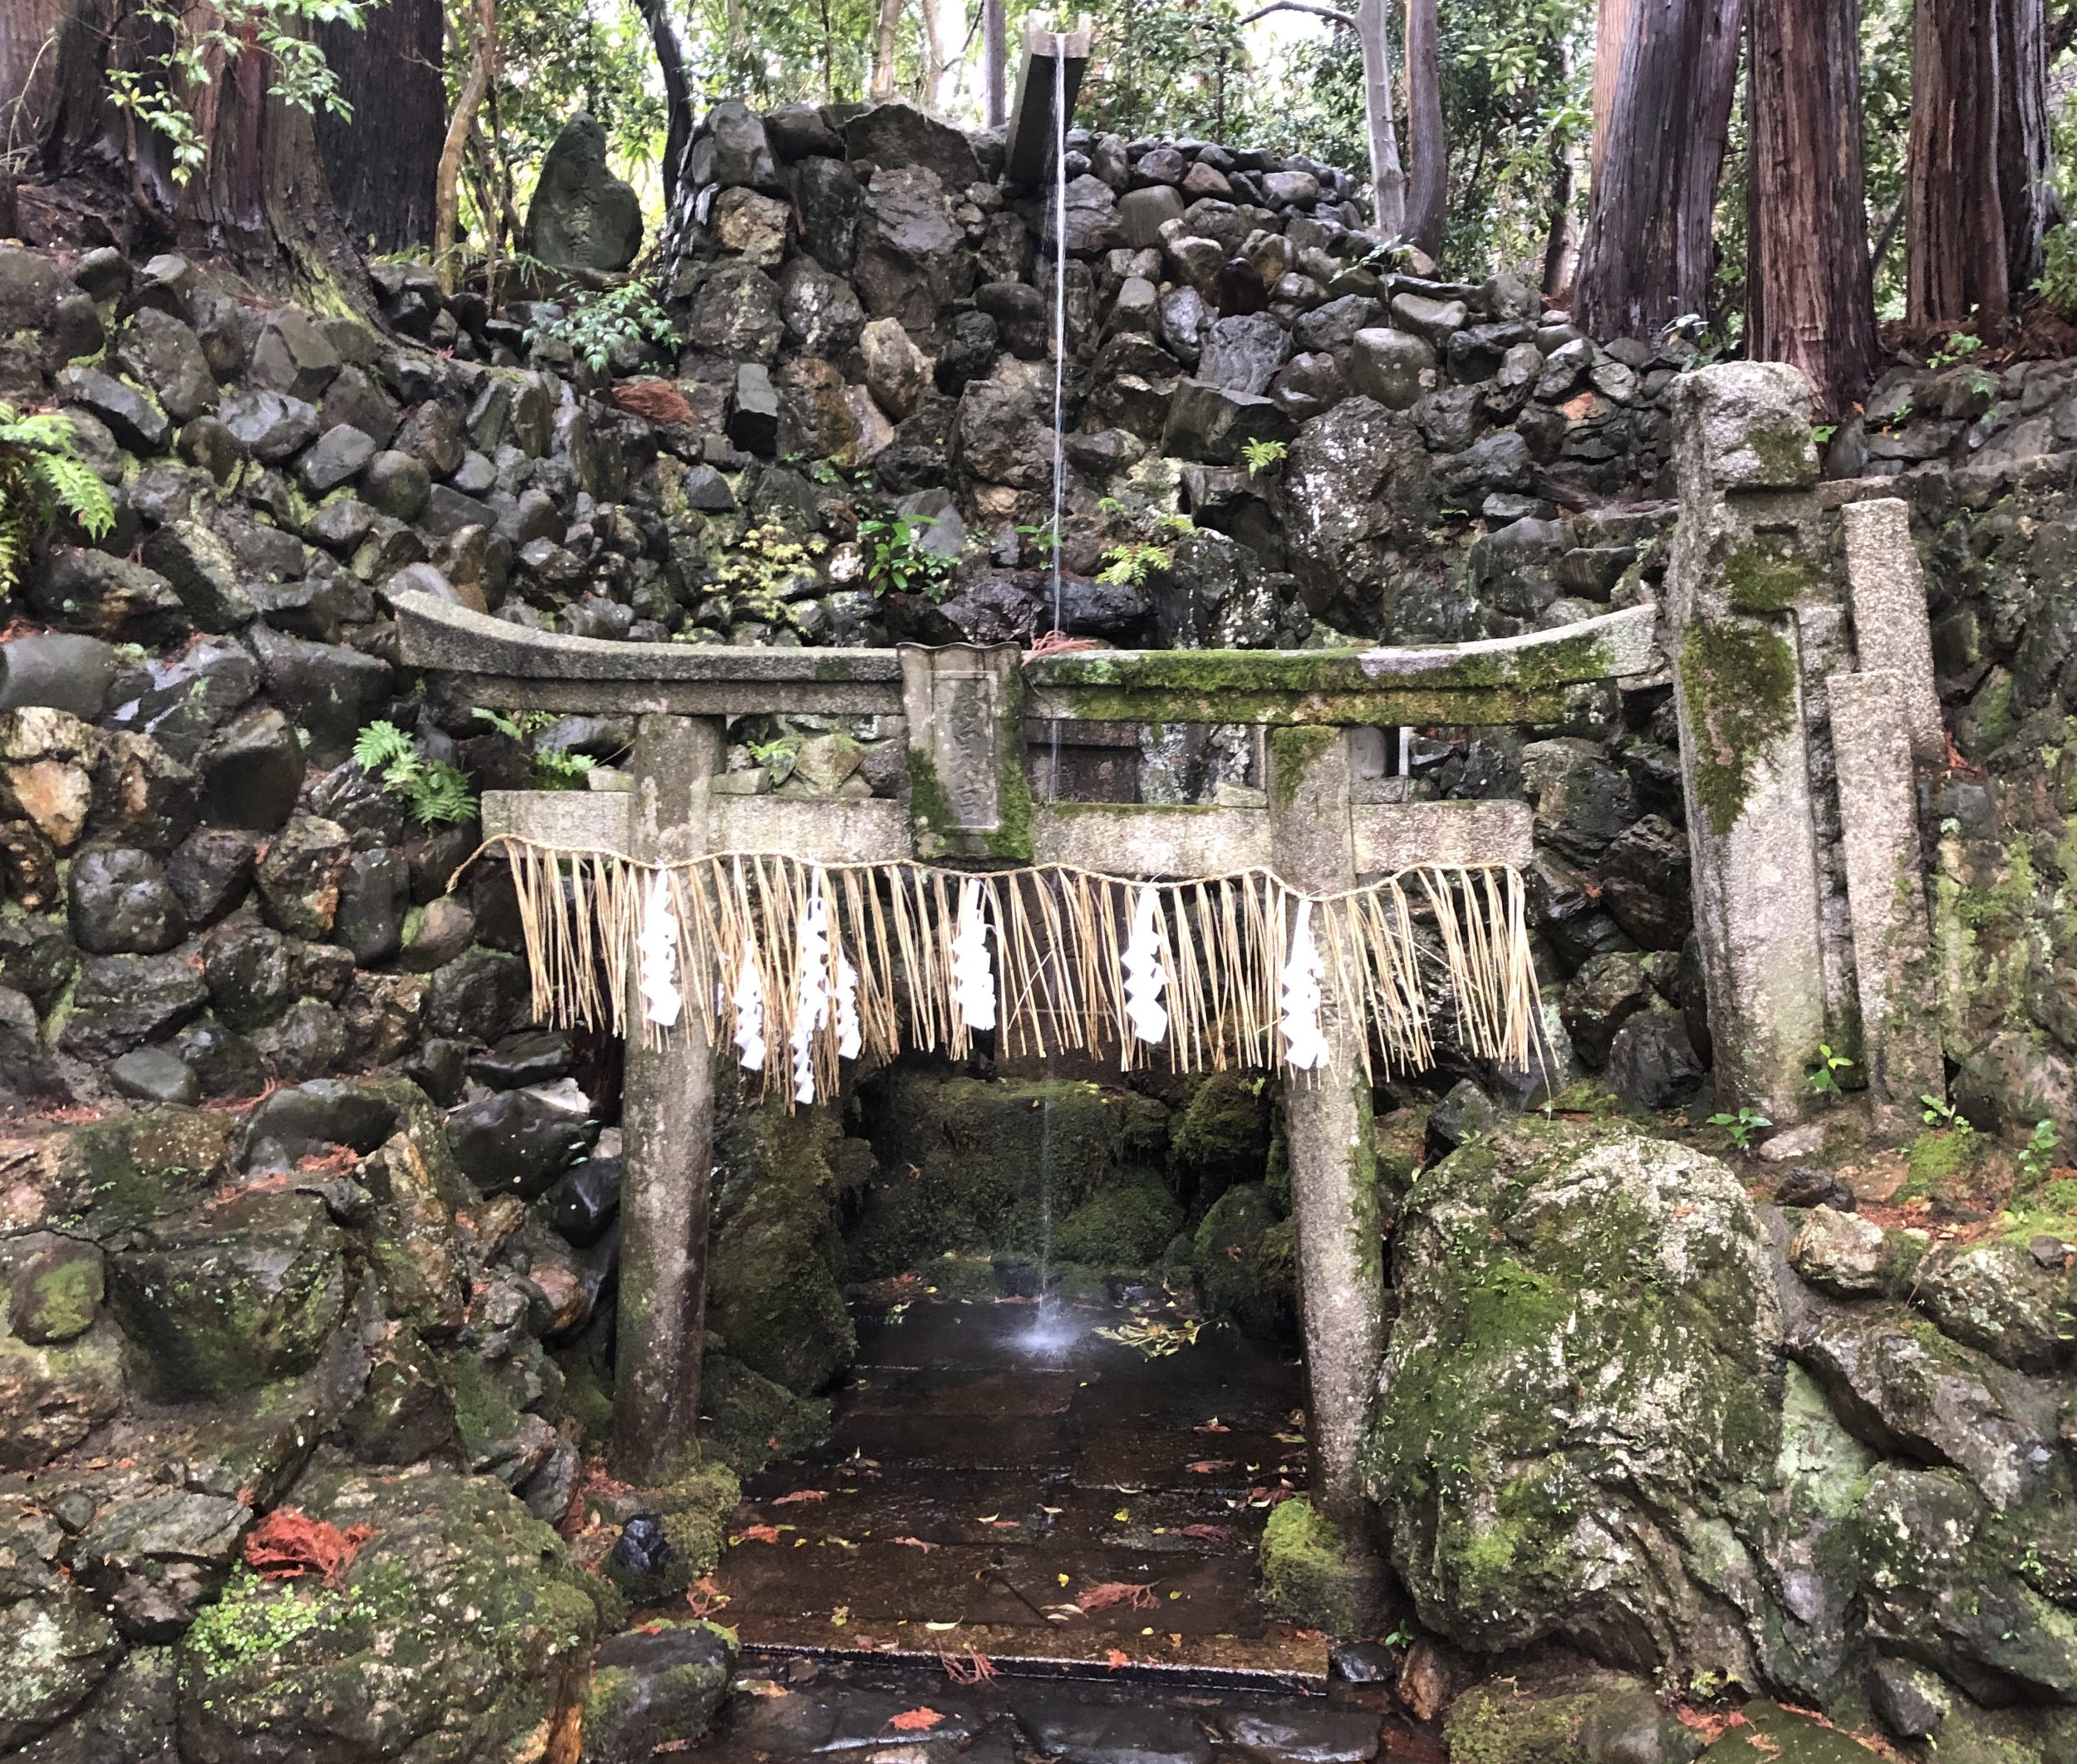 A sacred water spout in the hills behind Kyoto city marked by a stone Shinto  torii  gate and  shimenawa  of woven rice straw.